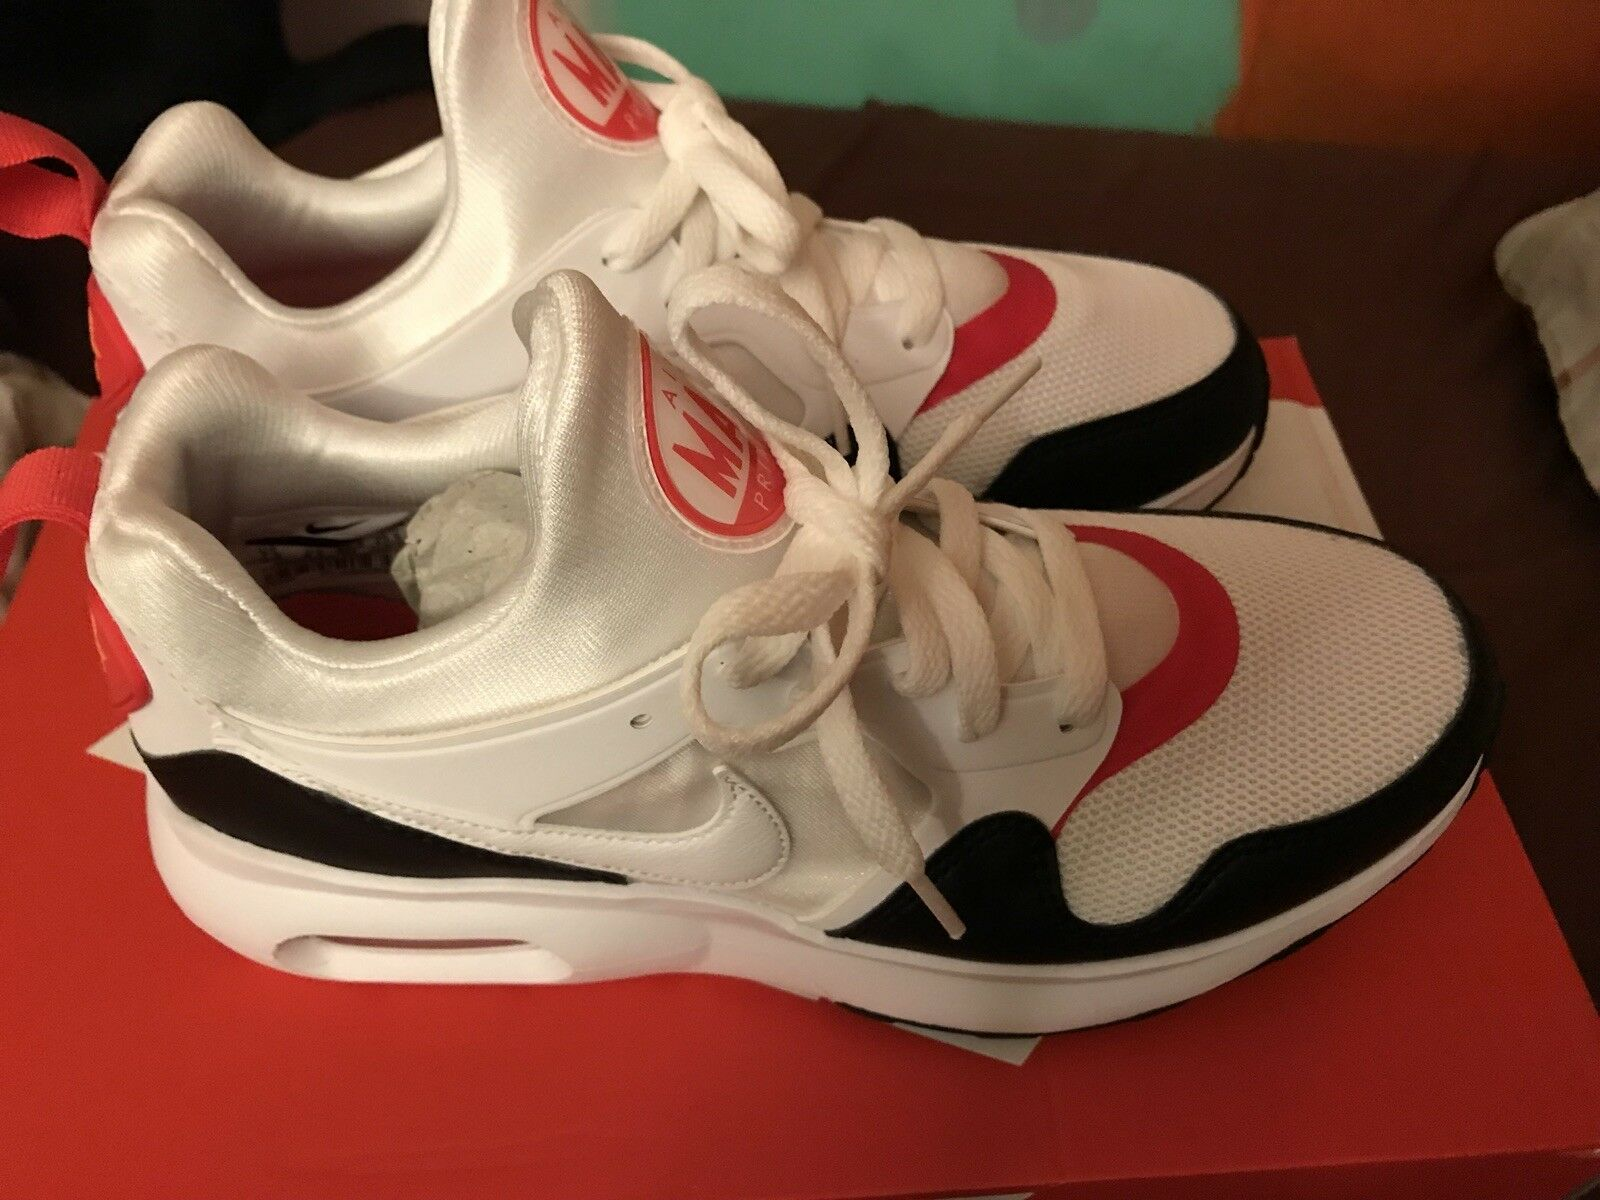 best sneakers d3b3f 1b692 ... Nike Air Max Max Max Prime size 7.5 e67aad ...